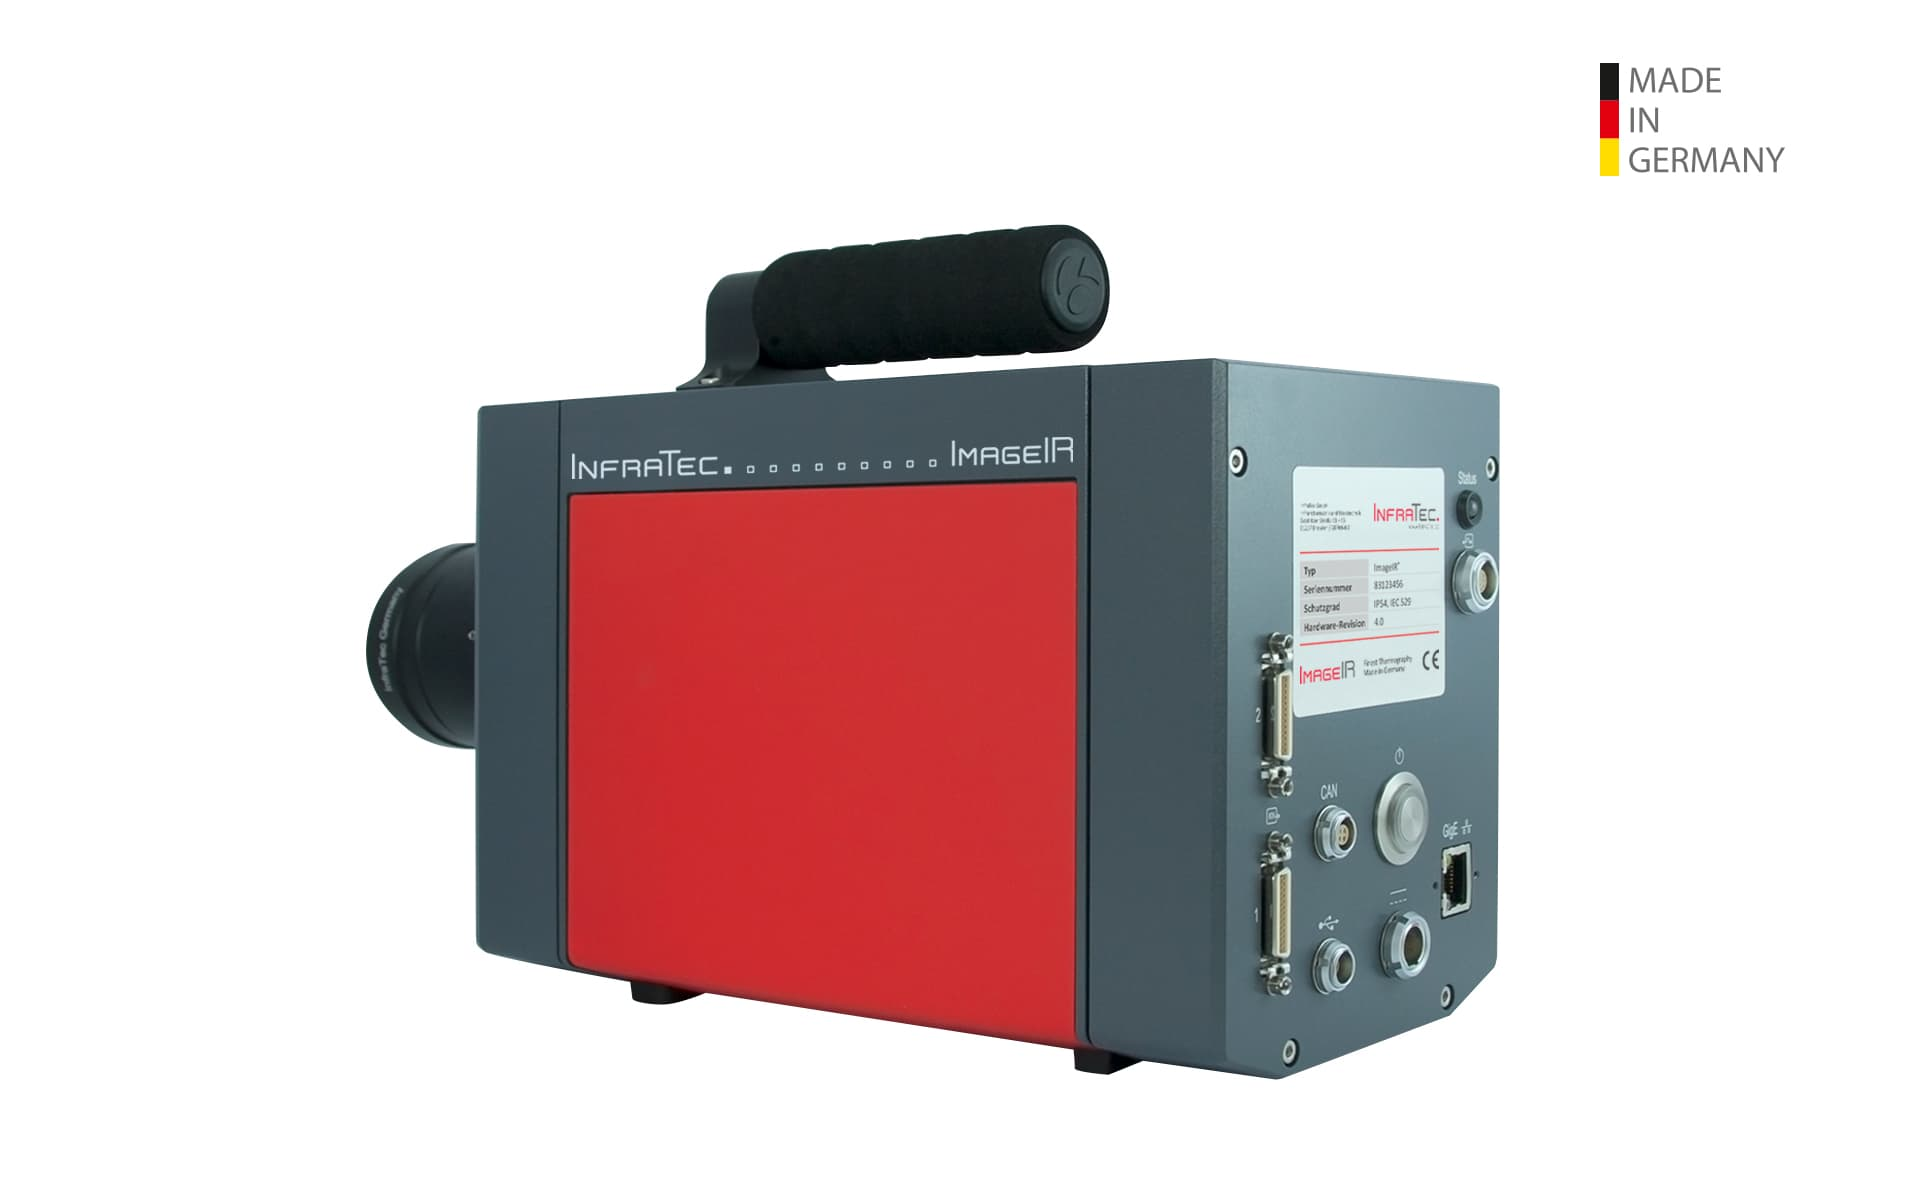 Infrared camera ImageIR® 8300 hp Series from InfraTec